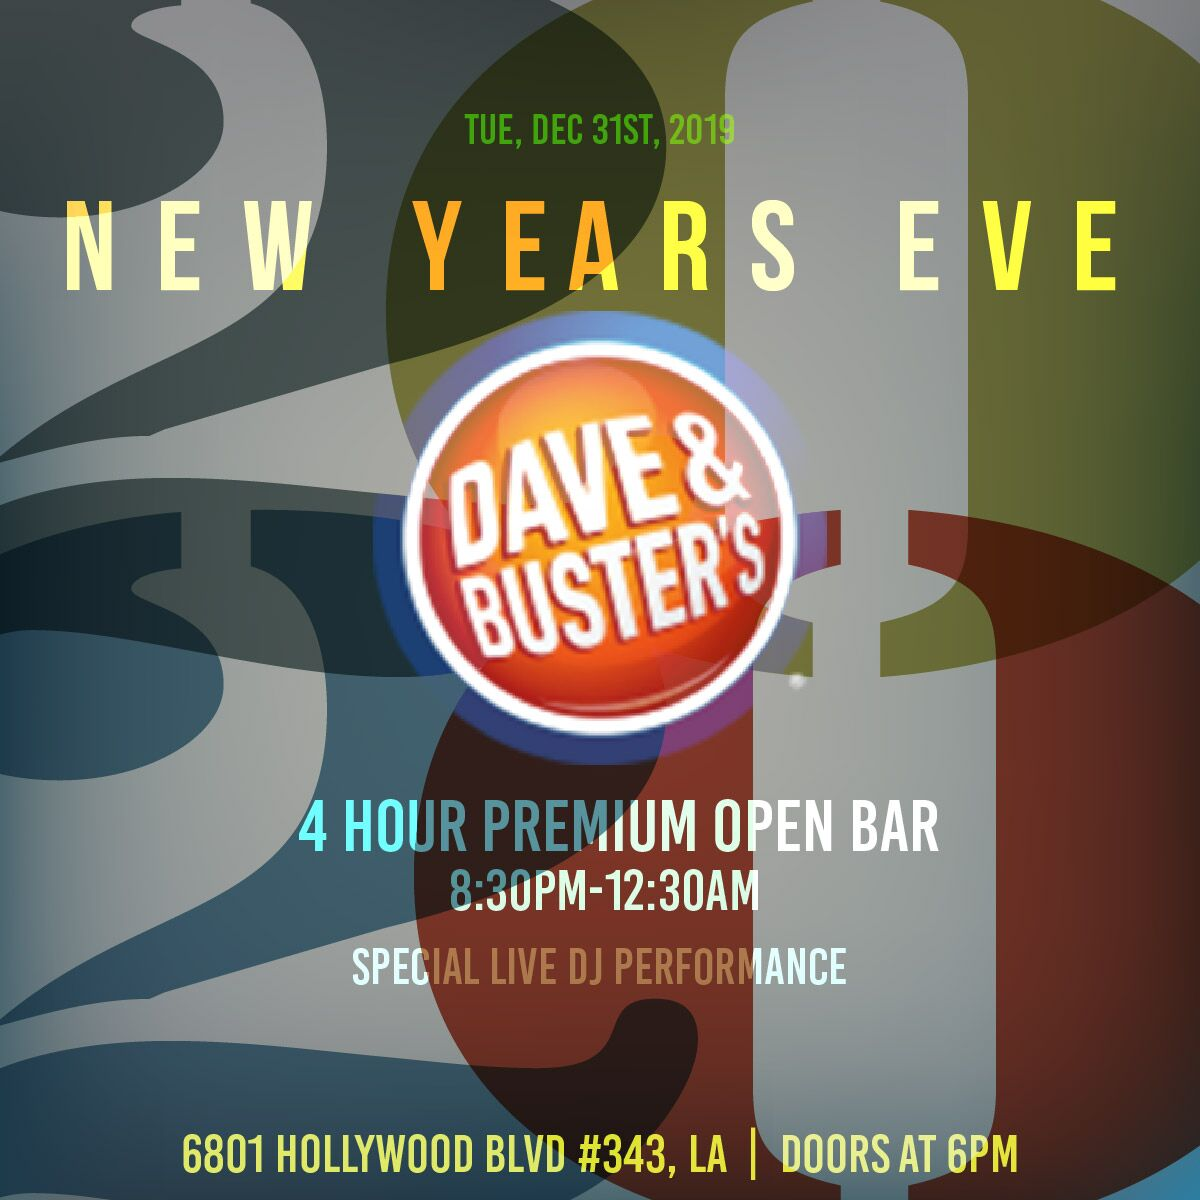 Dave & Buster's LA | VIP NYE Party | Buy Tickets Now